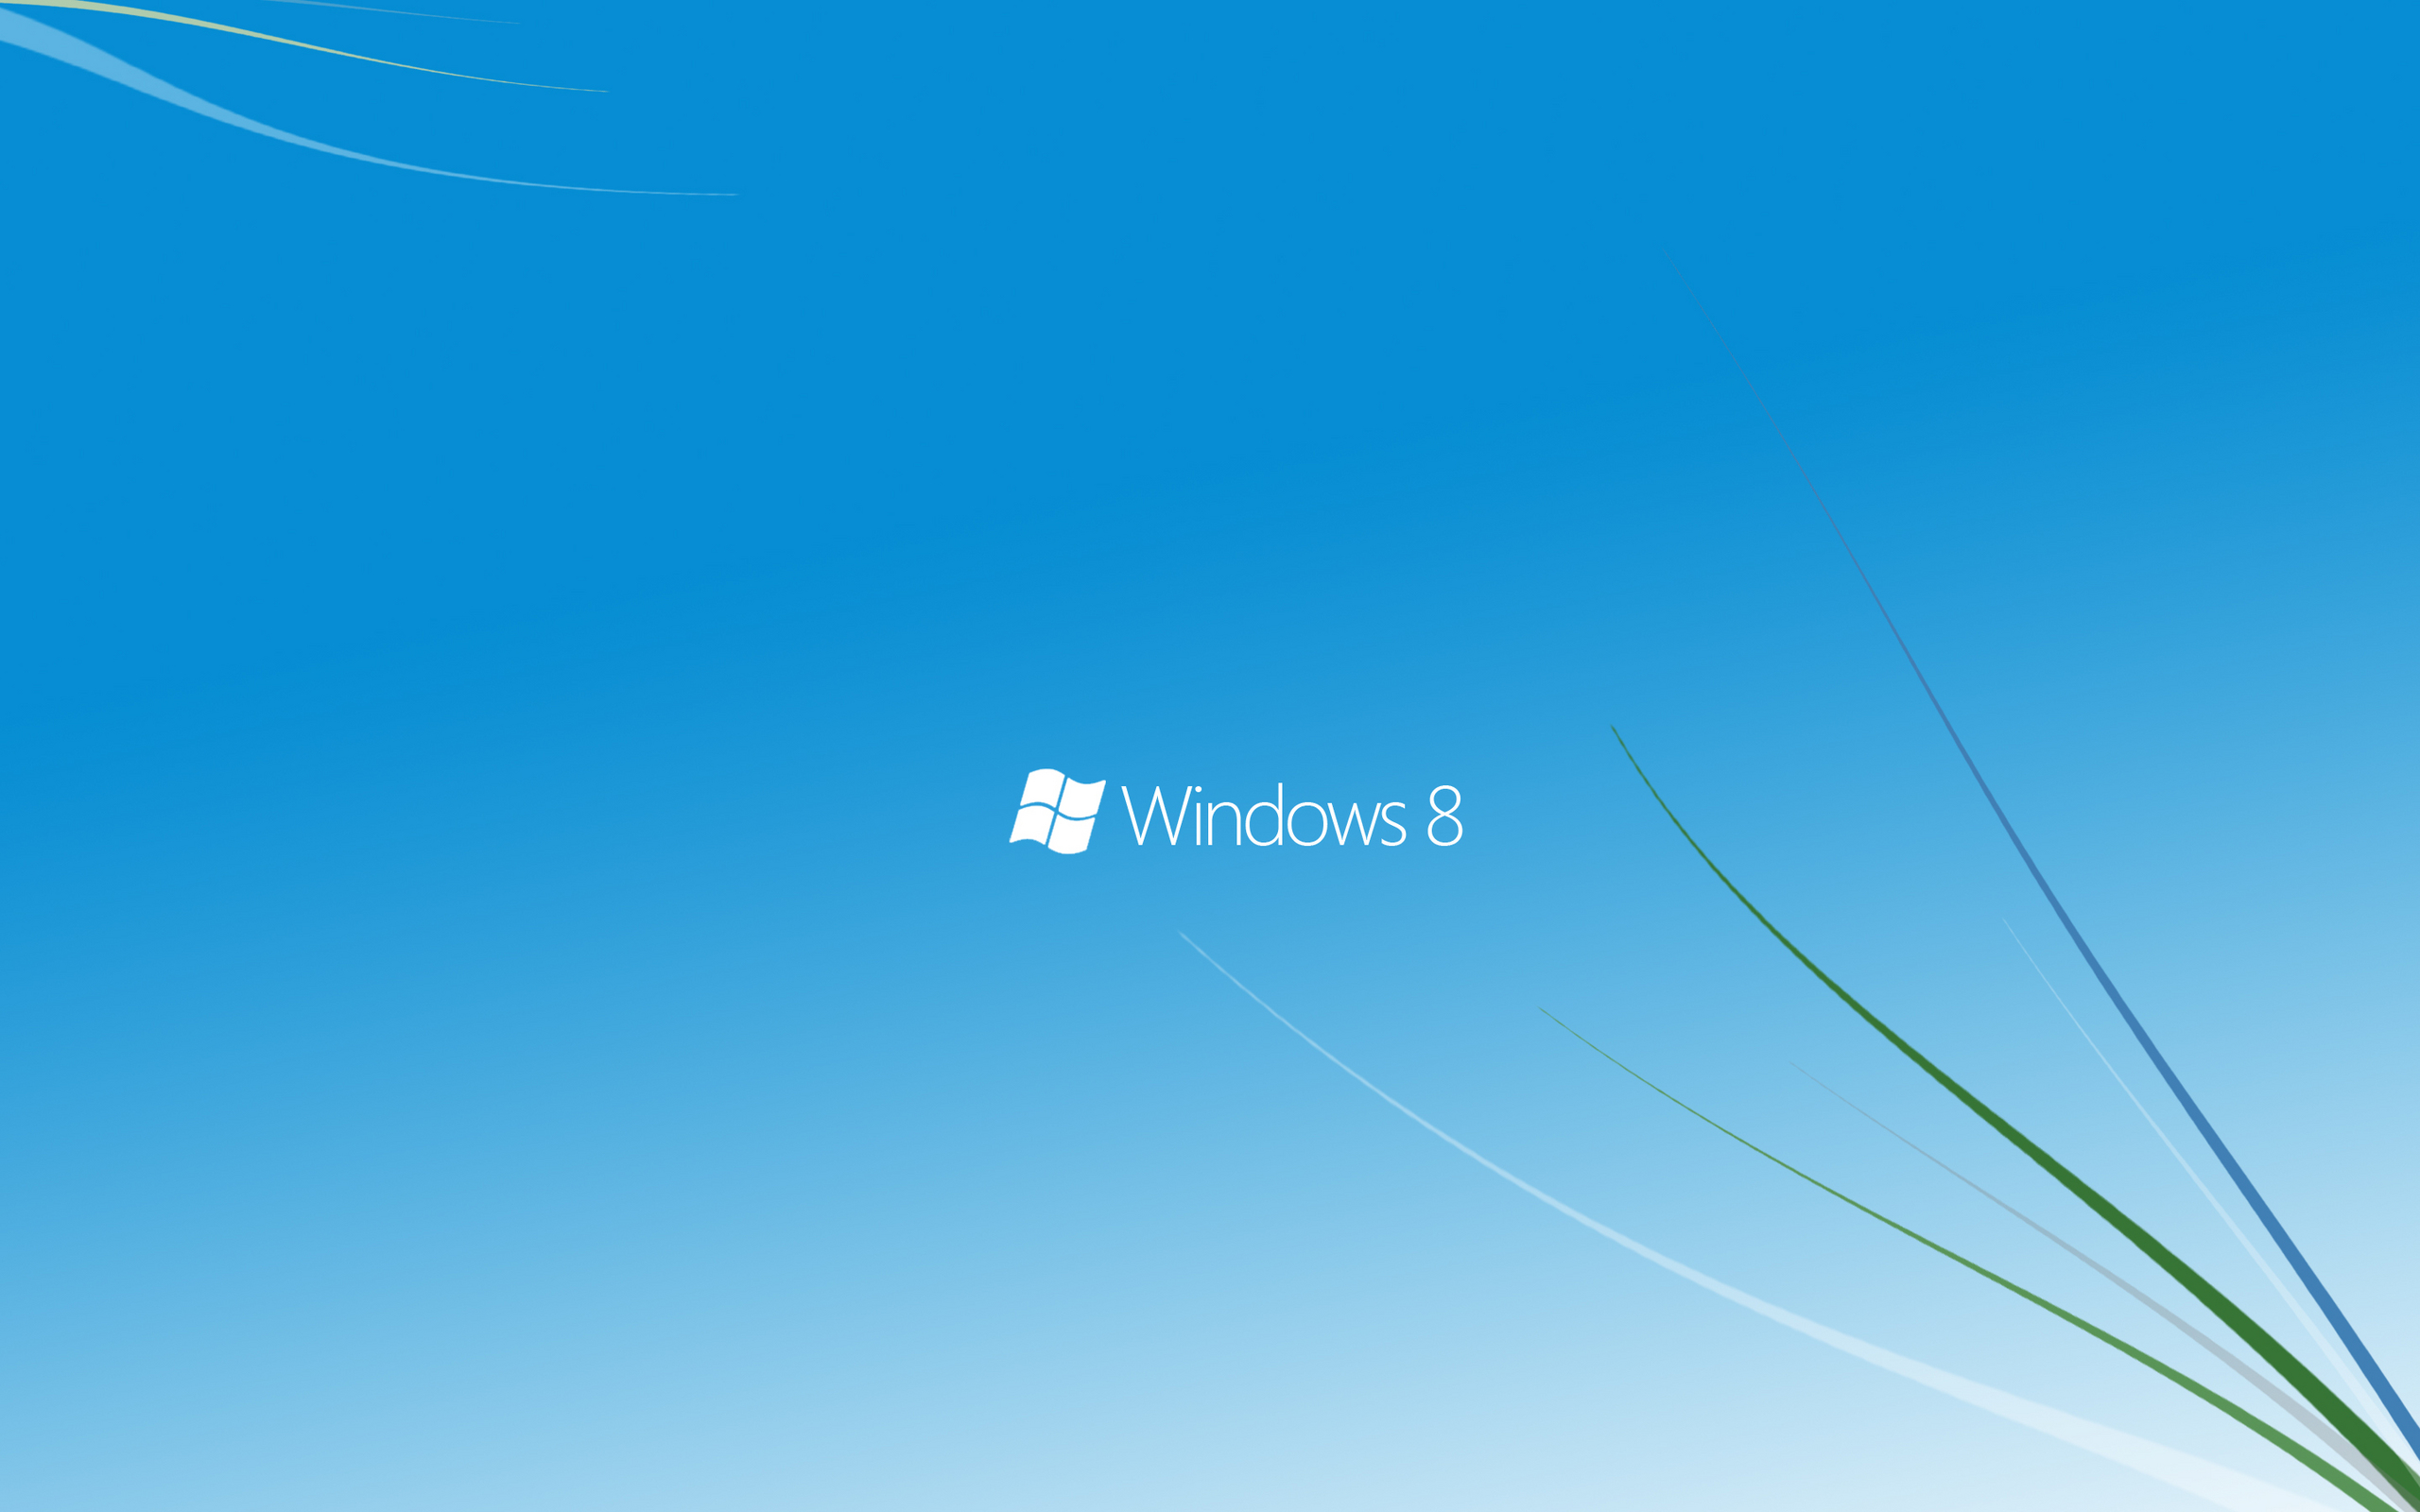 windows 8 images windows 8 wallpapers 6 hd wallpaper and background